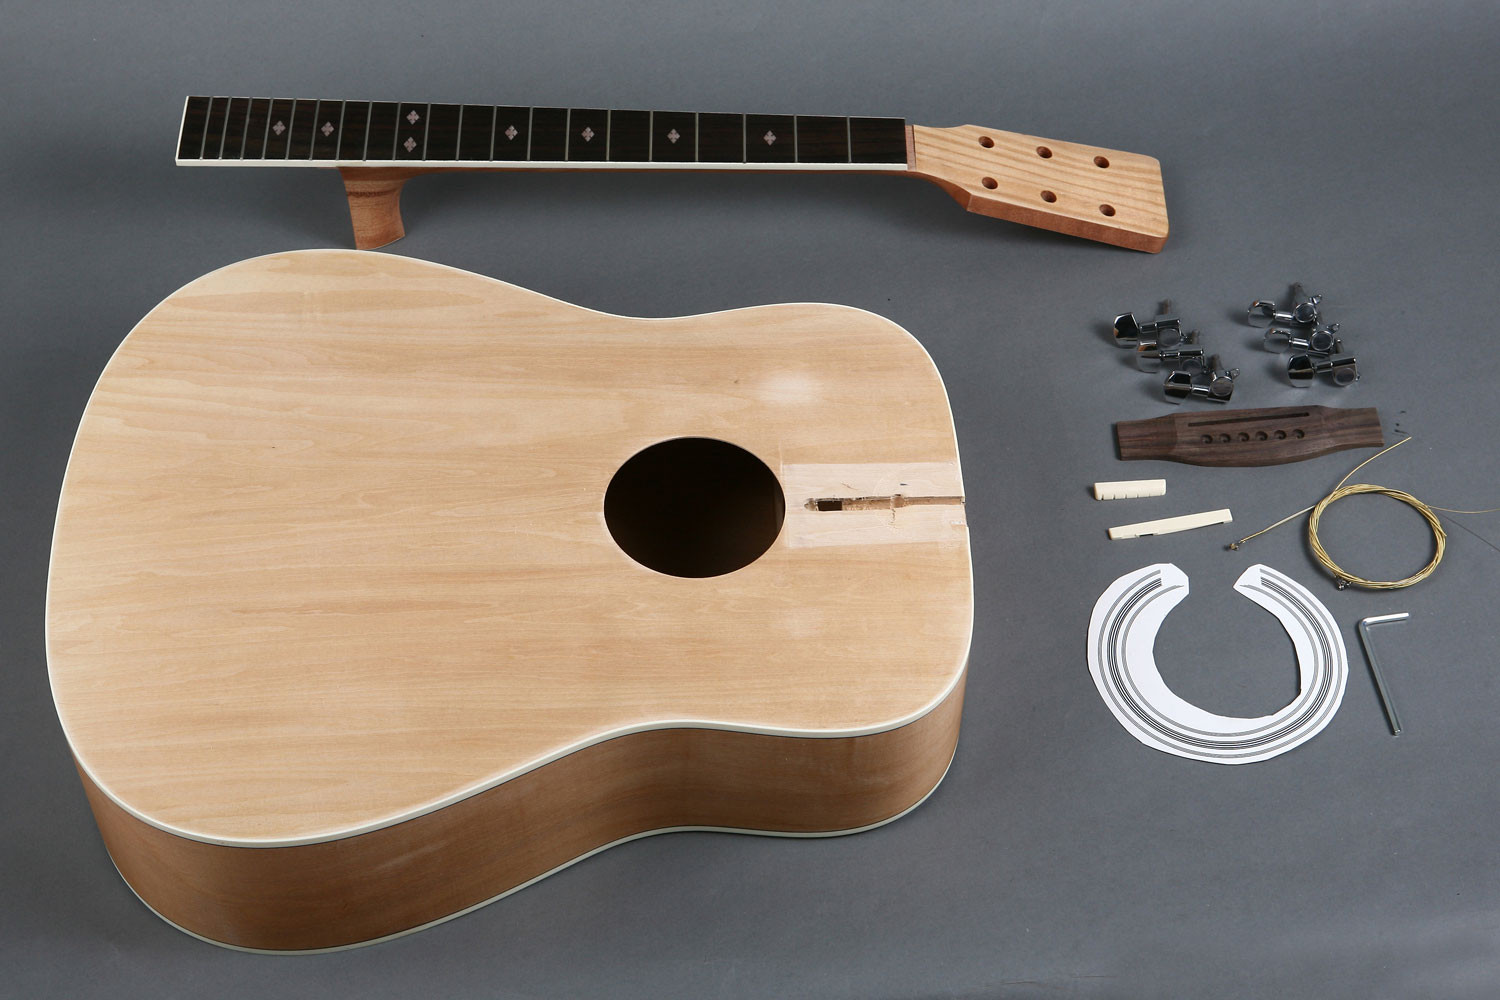 Best ideas about DIY Acoustic Guitar Kit . Save or Pin Unfinished 41' Dreadnought Acoustic Guitar DIY Kit GK Now.